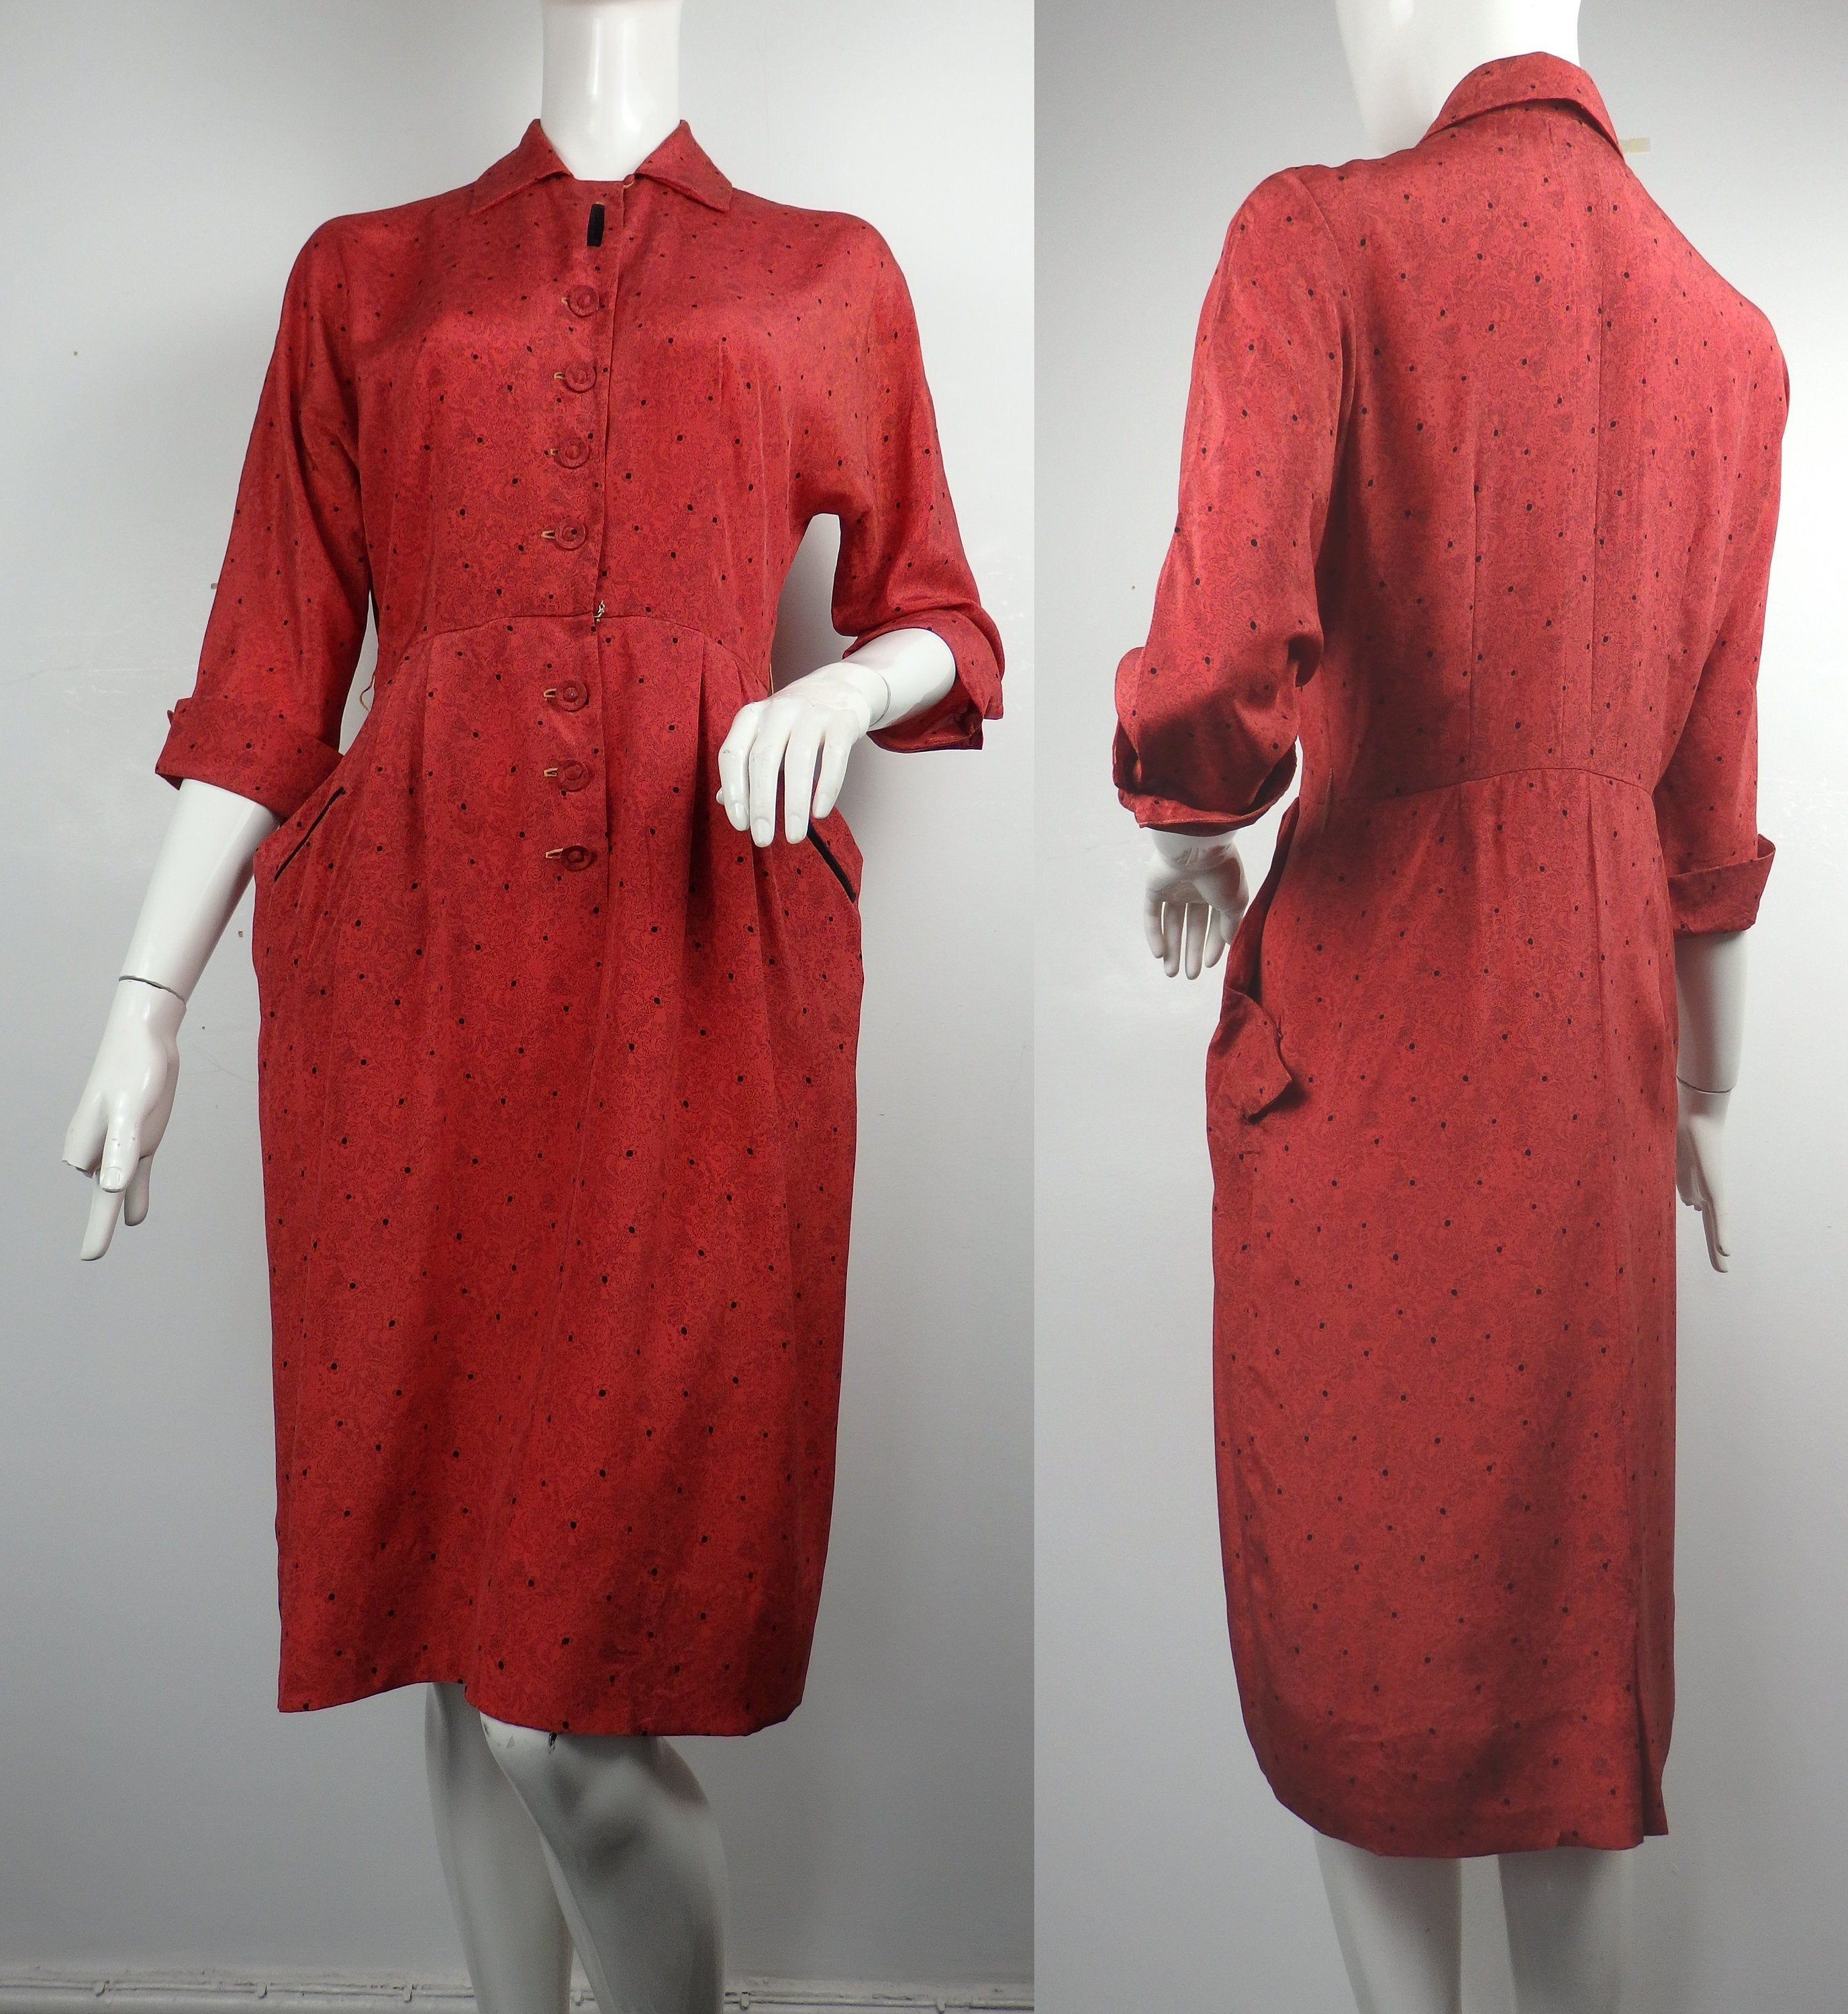 1940s Red Day Dress By Dale Lynn Vintage 40s Dress 1940s Etsy Dolman Sleeve Dresses Red Dress Maxi Day Dresses [ 3000 x 2753 Pixel ]